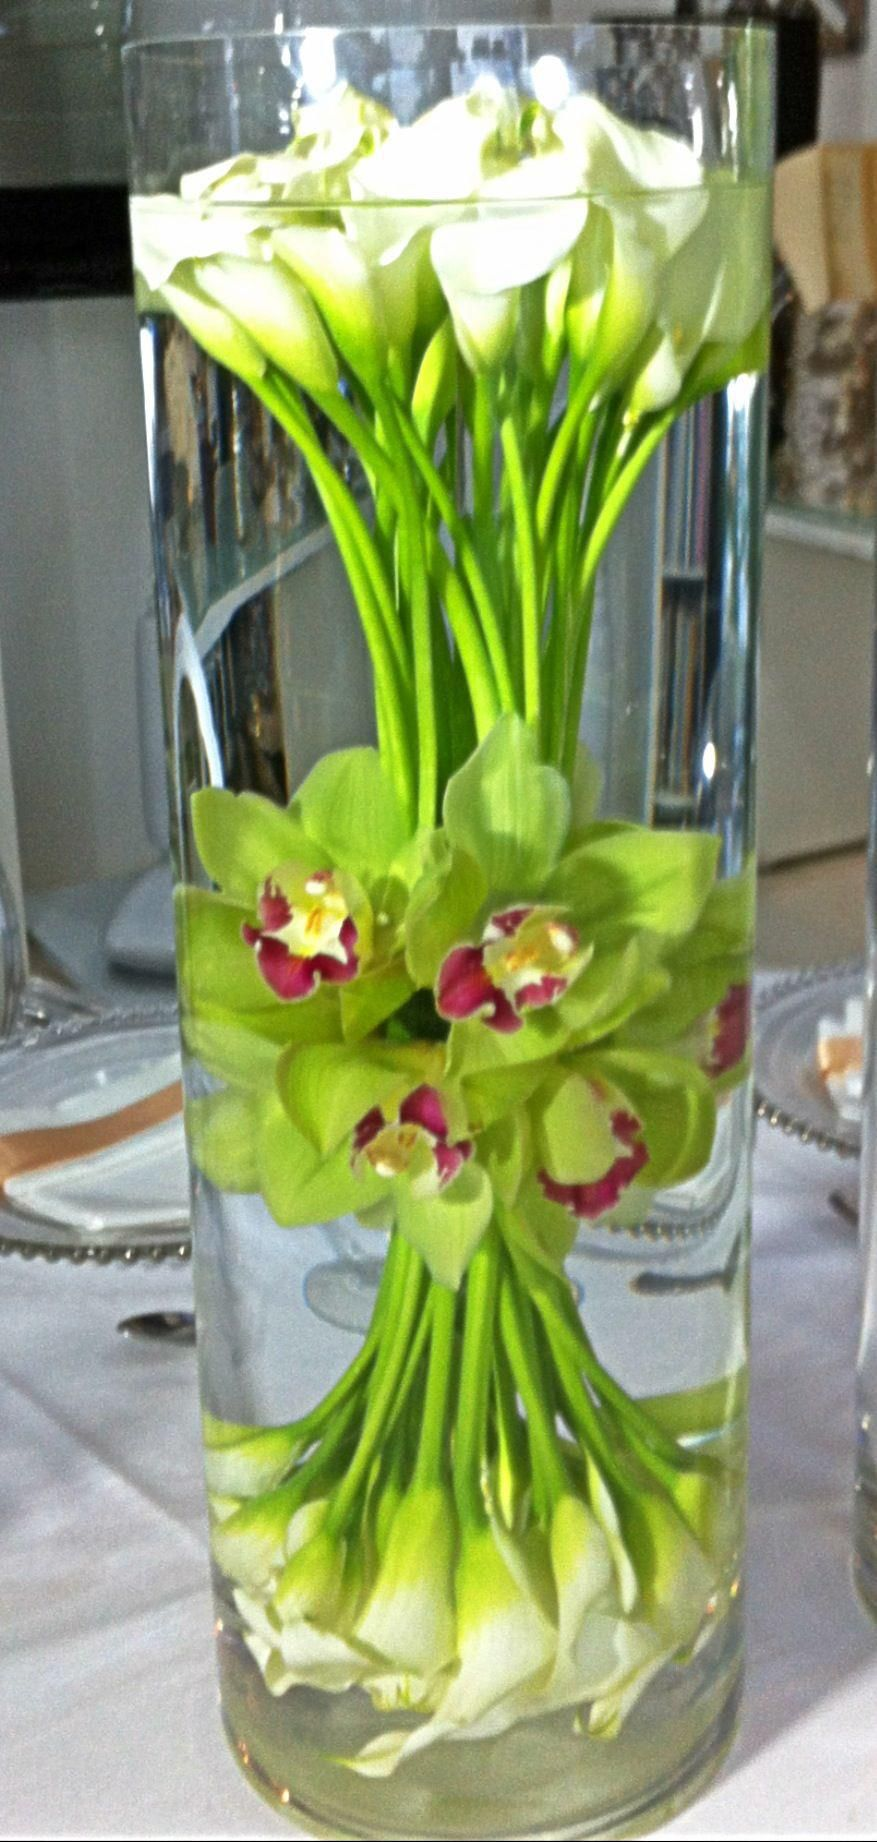 Orchid Centerpiece In Water : Very cool calla lilly and orchid water flower corporate